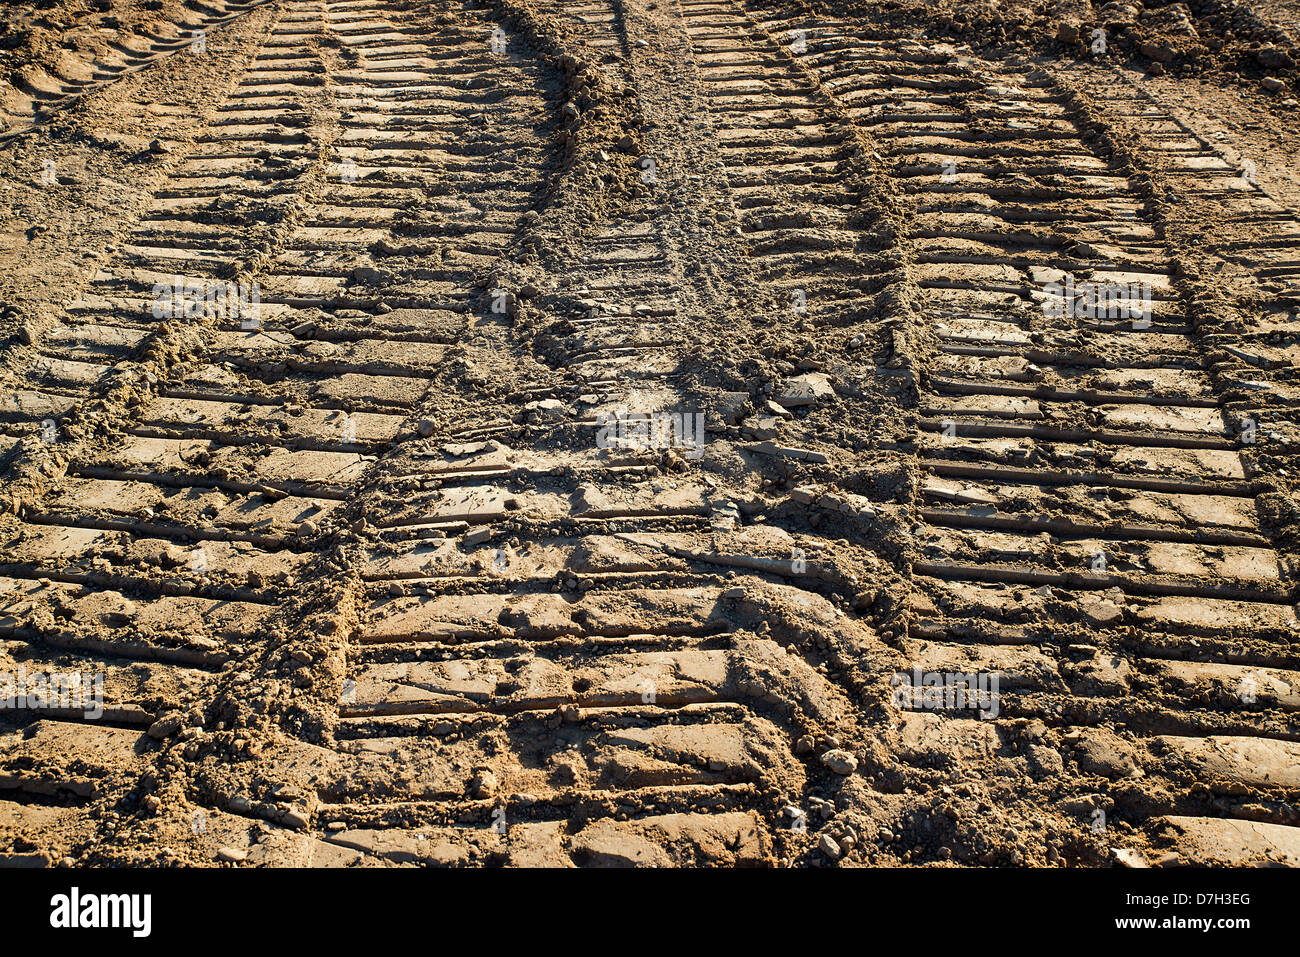 Tractor tracks in soil at housing construction site. - Stock Image